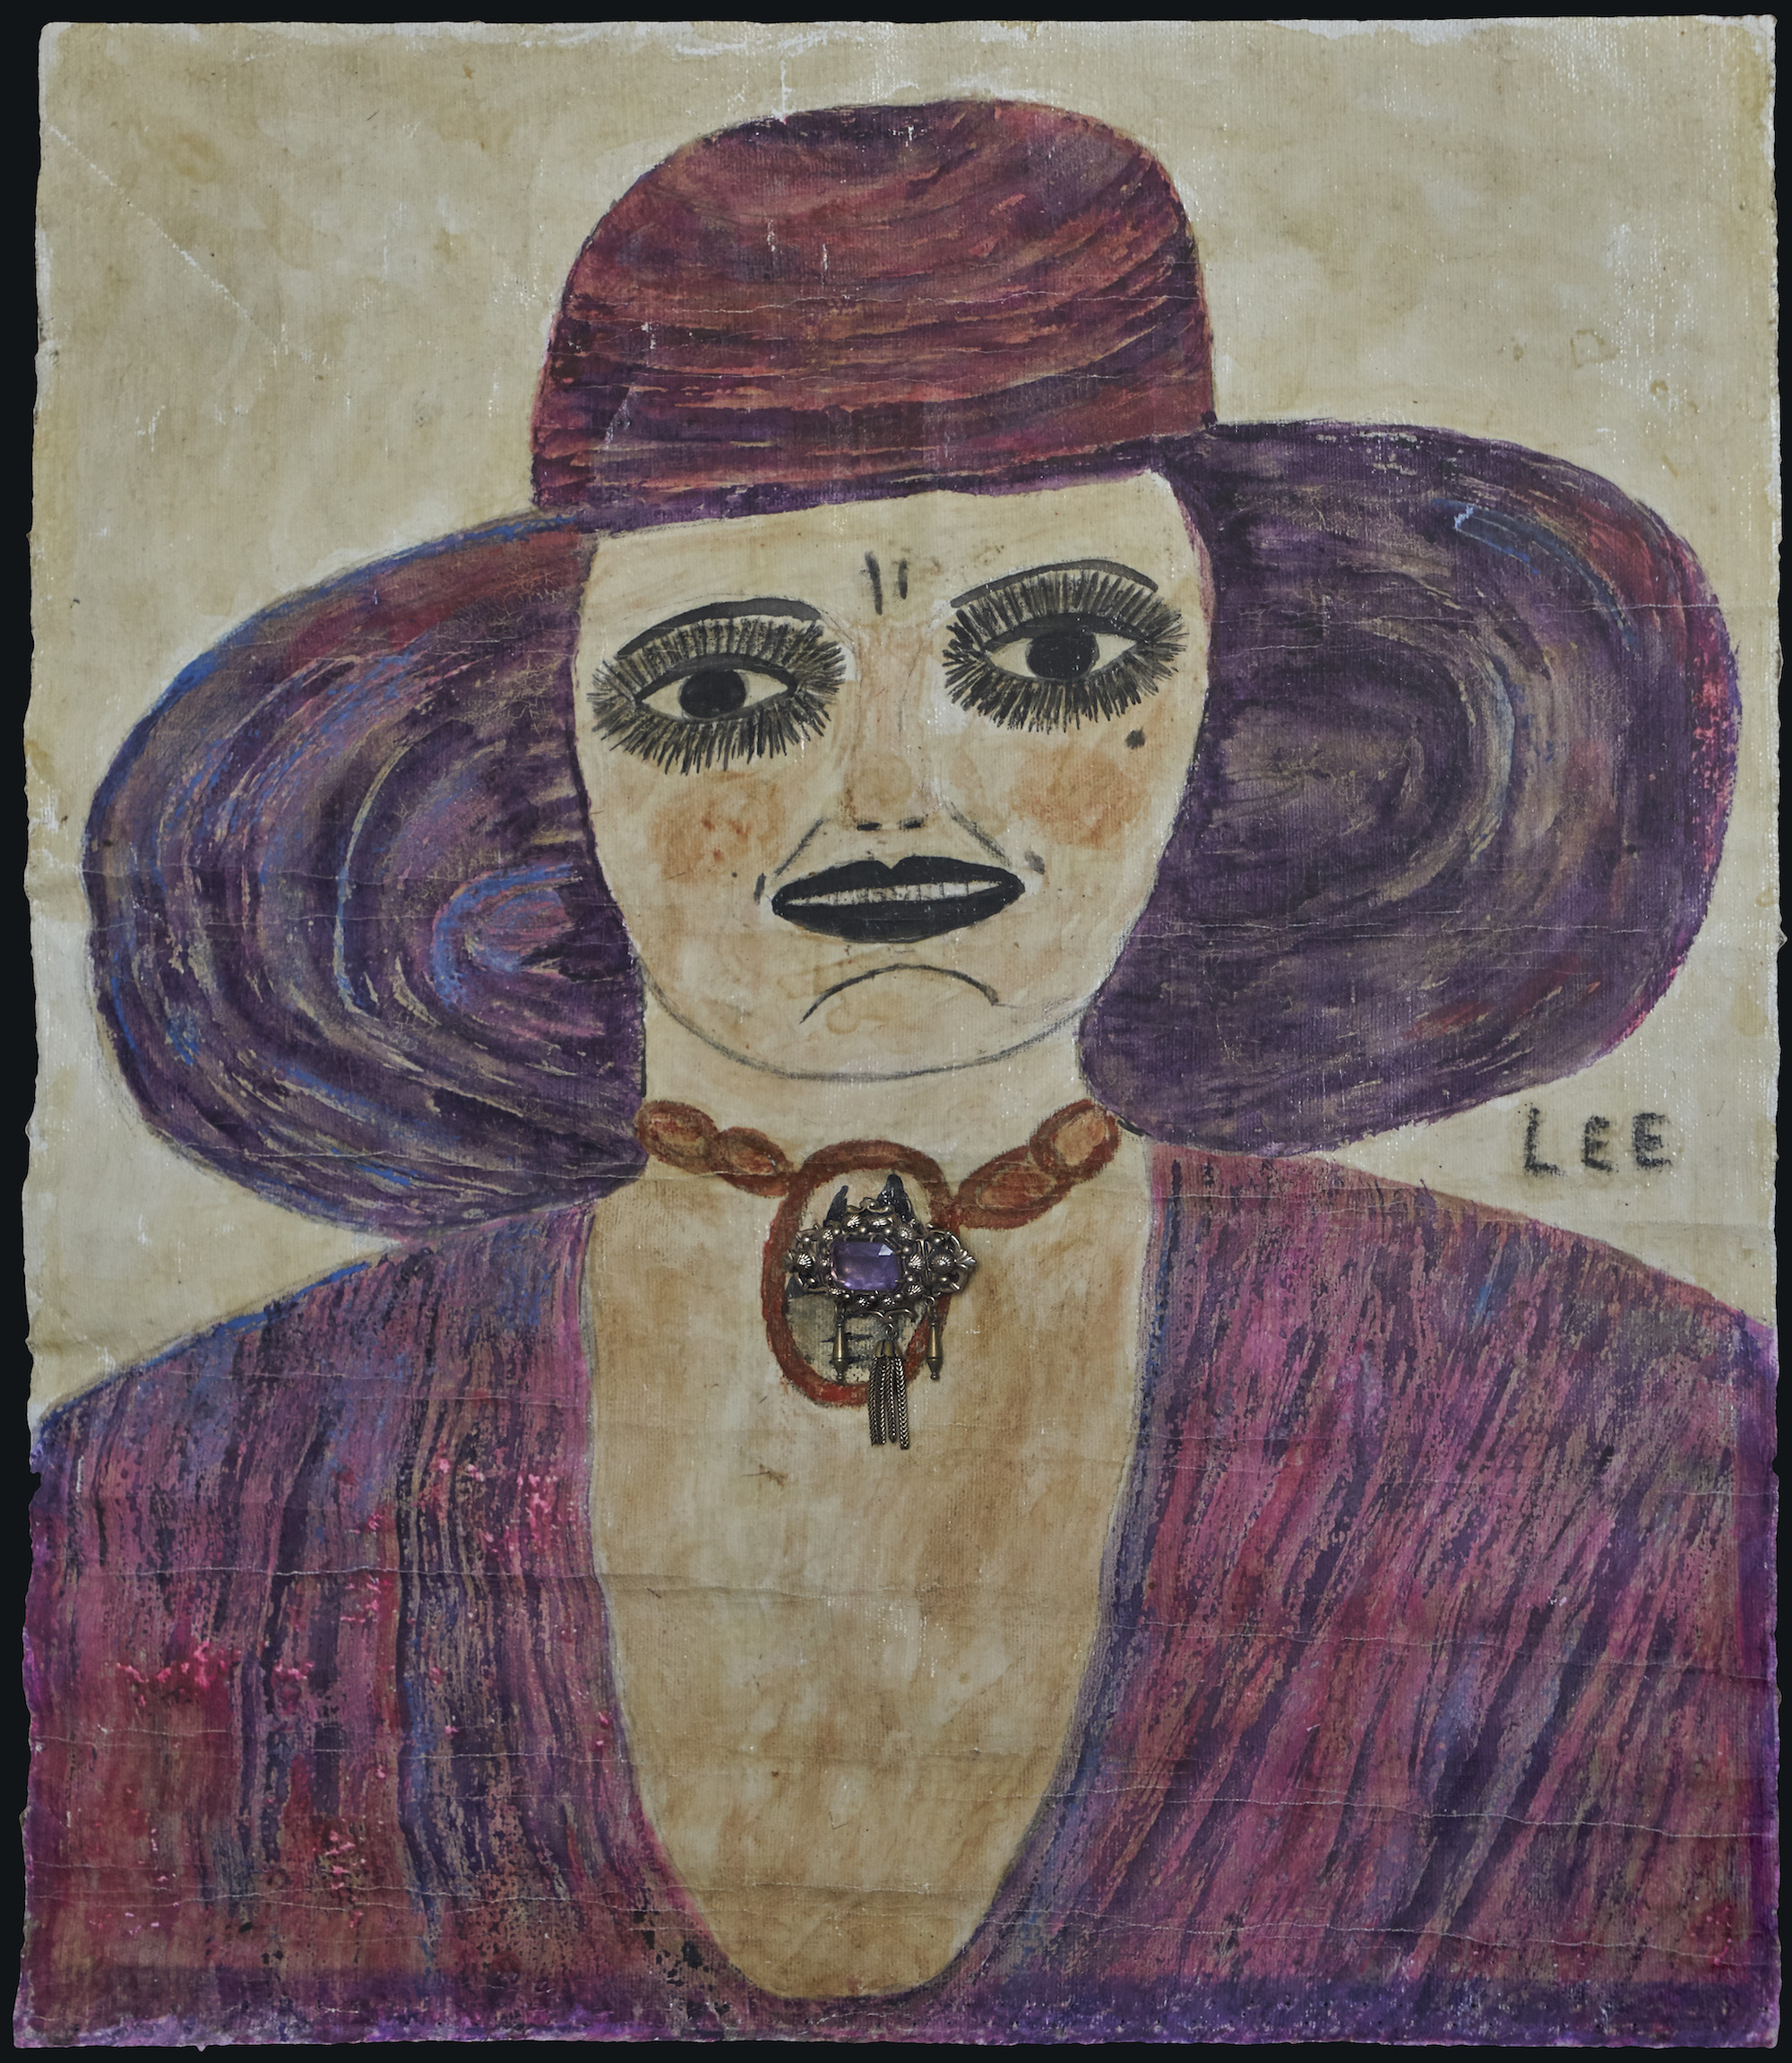 Lee Godie, Untitled (girl/portrait), n.d. Collection of Intuit: The Center for Intuitive and Outsider Art, museum purchase with funds provided by Dale Taylor and Angela Lustig, 2018.1.5.Photo© John Faier